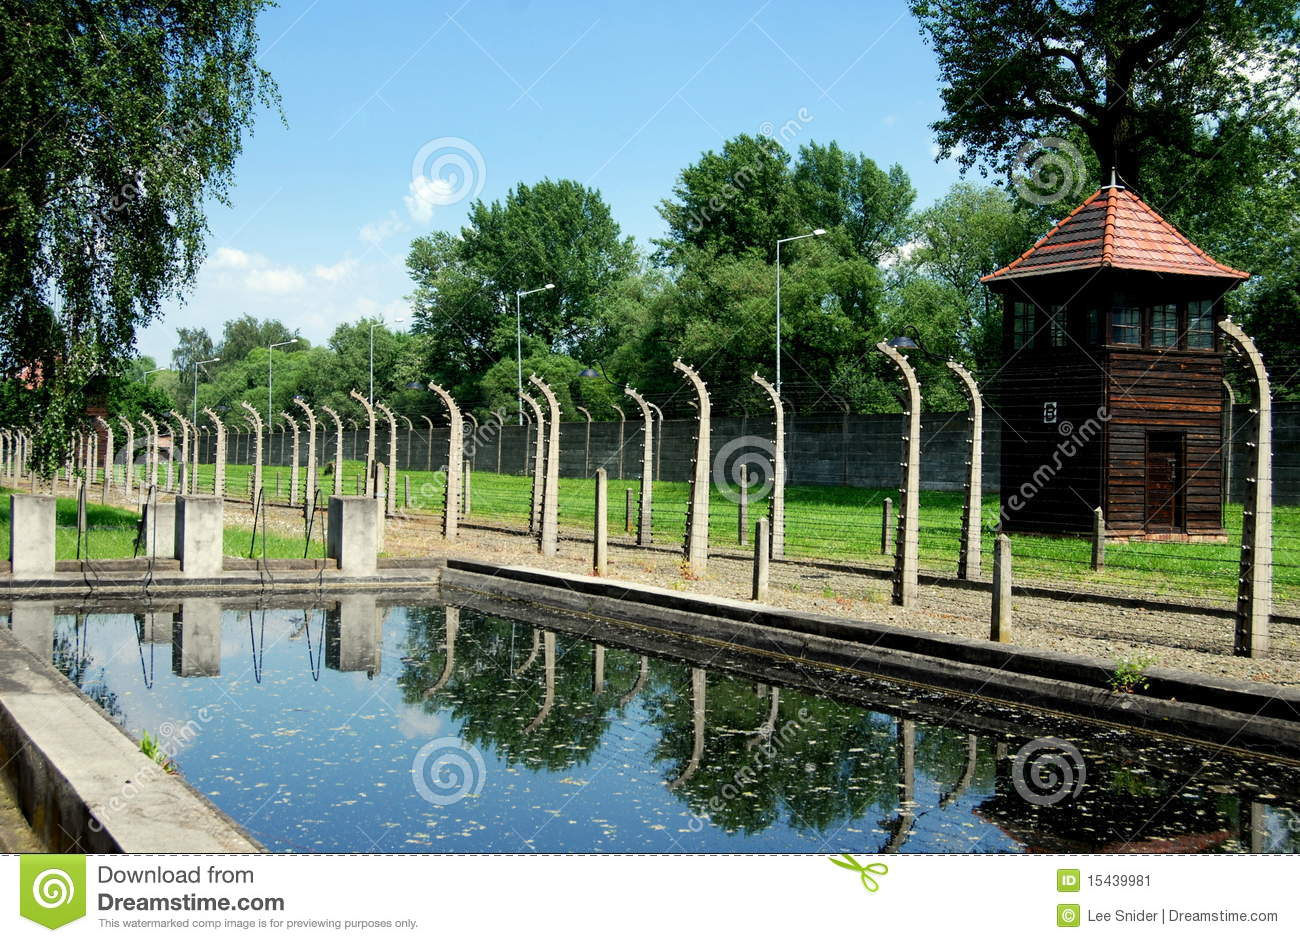 Auschwitz pologne piscine nazie photo ditorial image for Piscine xs prix